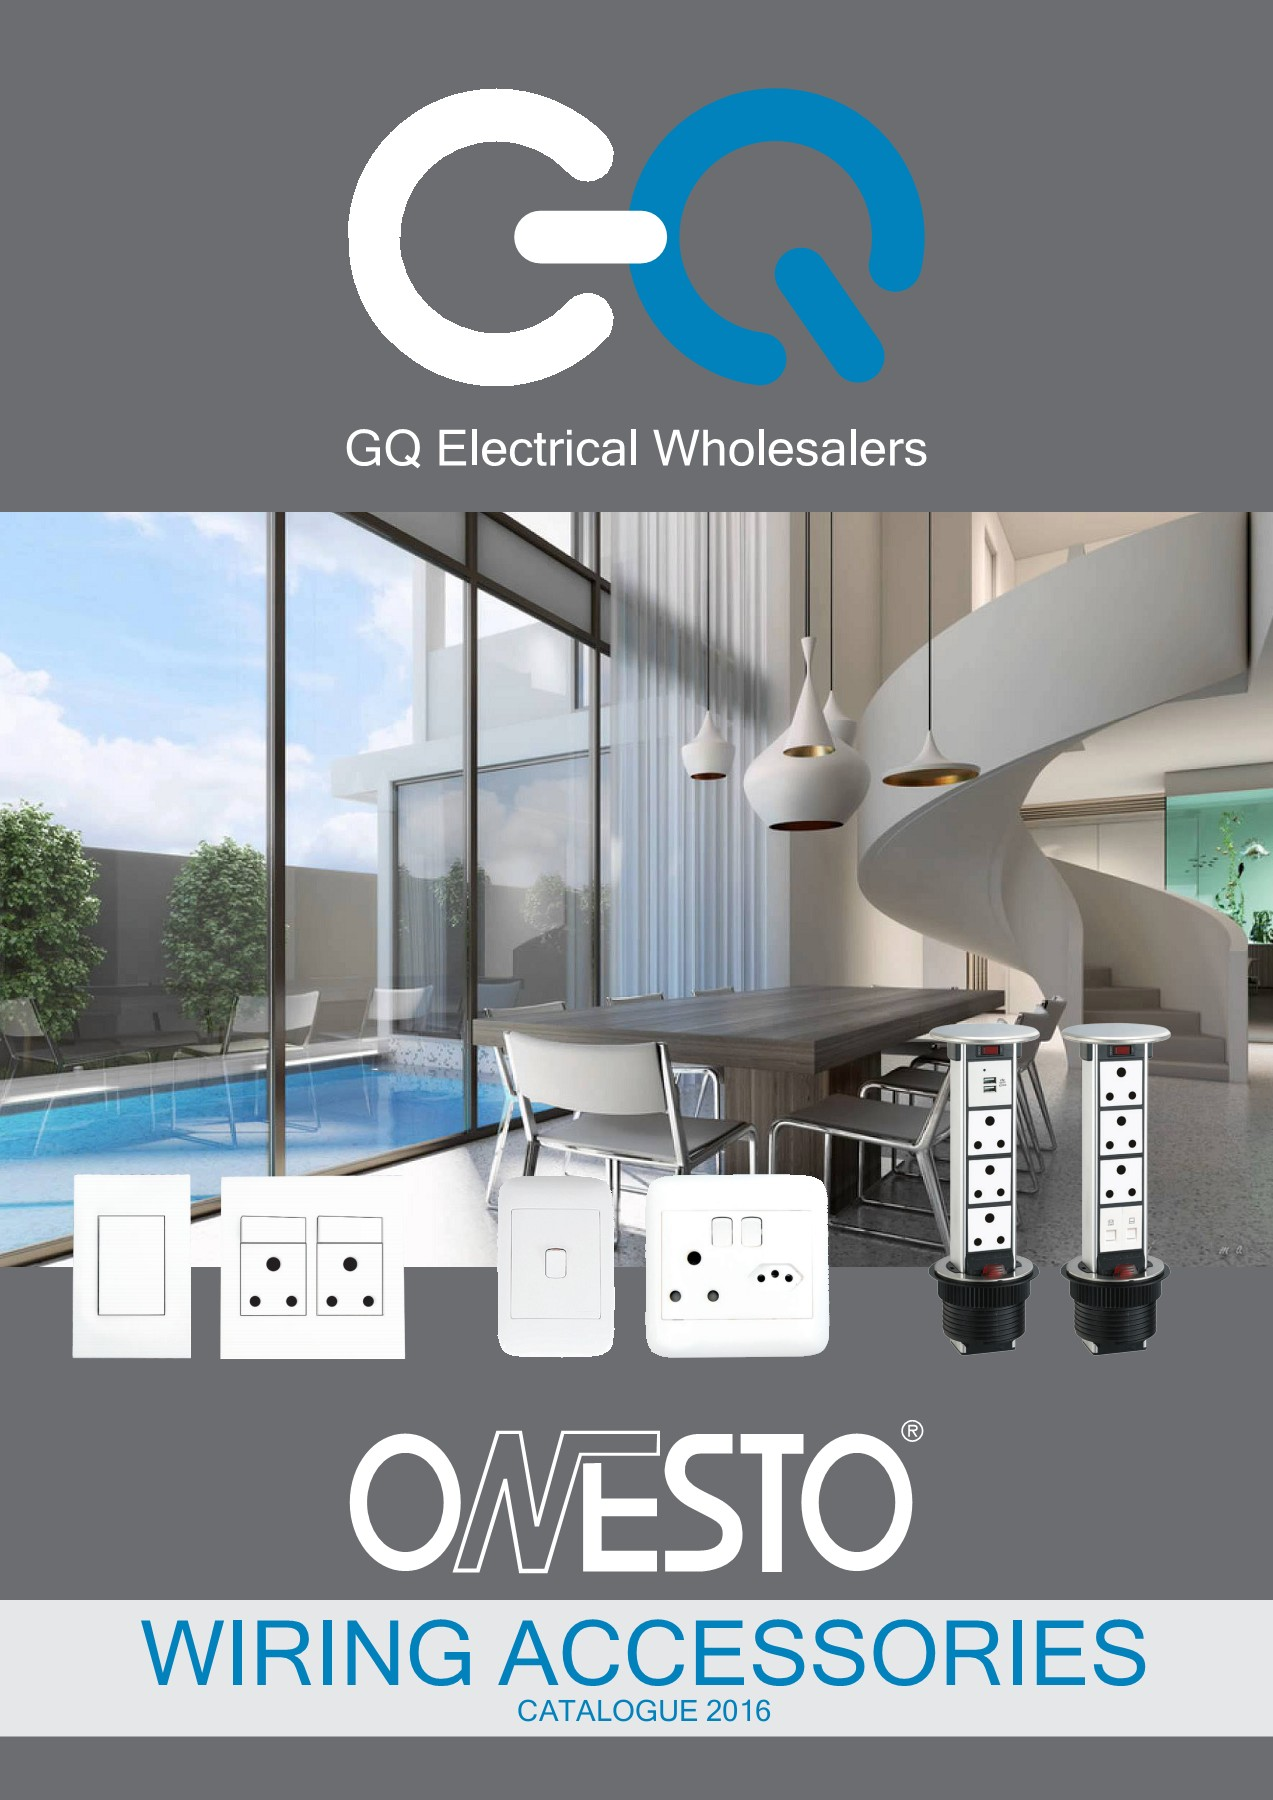 Gq Wiring Acc Catalogue Pages 1 31 Text Version Anyflip Accessories Electrical Wholesalers For All Your And